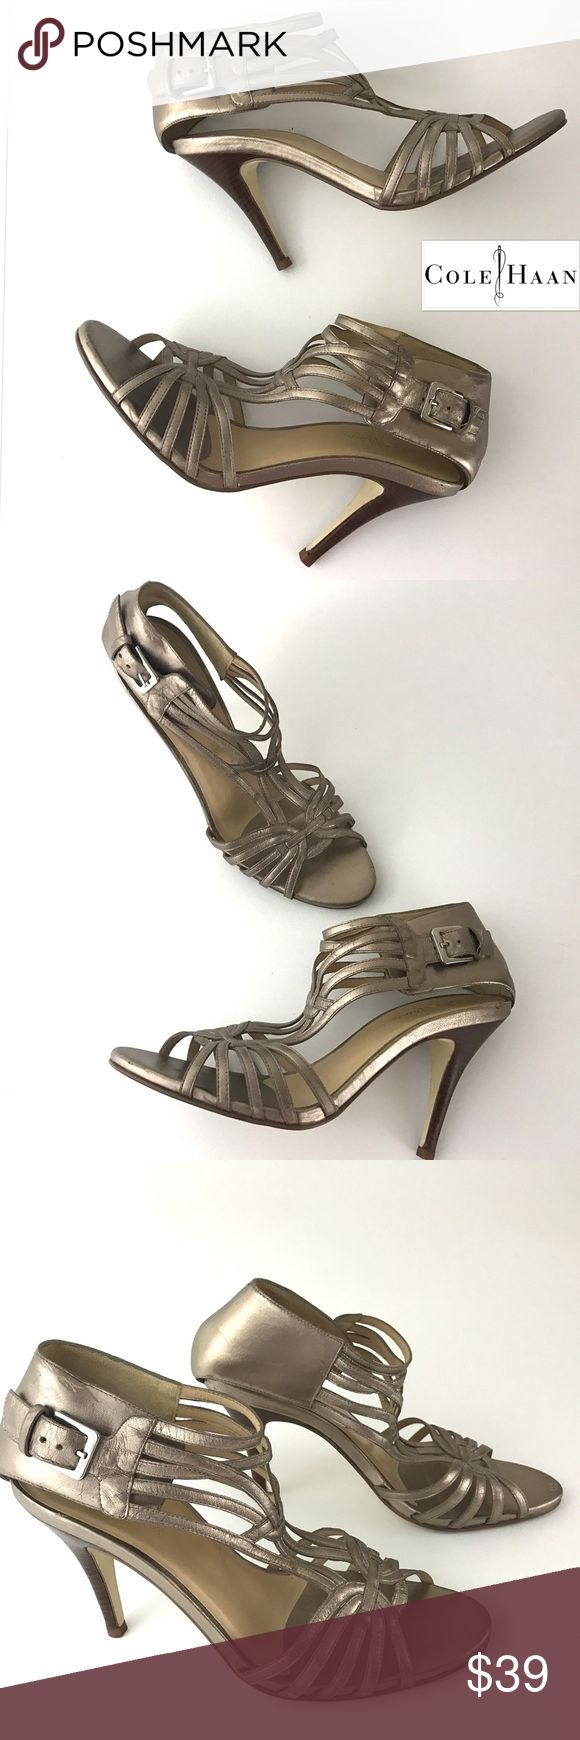 """Cole Haan Strappy Leather Caged Heel Sandals Cole Haan   Strappy Leather Sandal Heels Metallic Caged Shoes  Women's Size 9.5 M   Pre Owned Heels, in Good Shape  Some Scuffing- Any & All Shown in Photos  Original Box is Not included   Heel Height:4""""    Item comes from a pet free/smoke free clean environment  please contact me for any additional questions  I offer combined shipping Cole Haan Shoes Heels"""